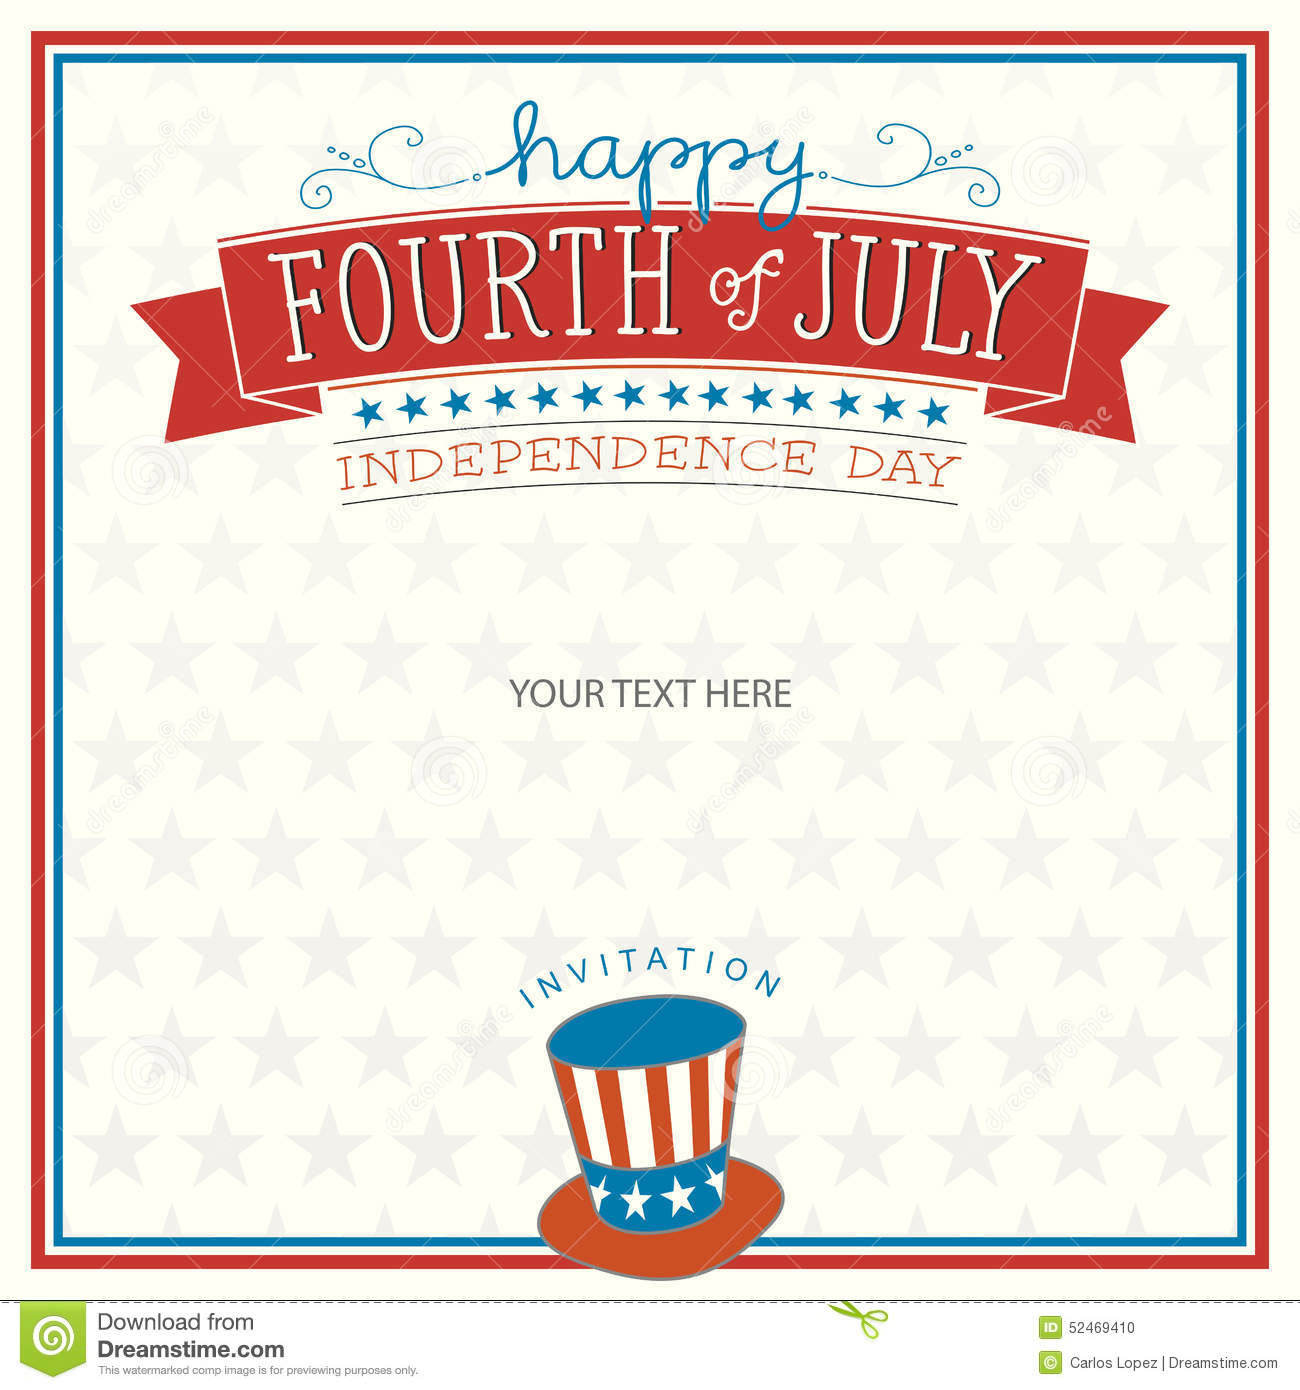 fourth of july invitation stock vector illustration of card 52469410